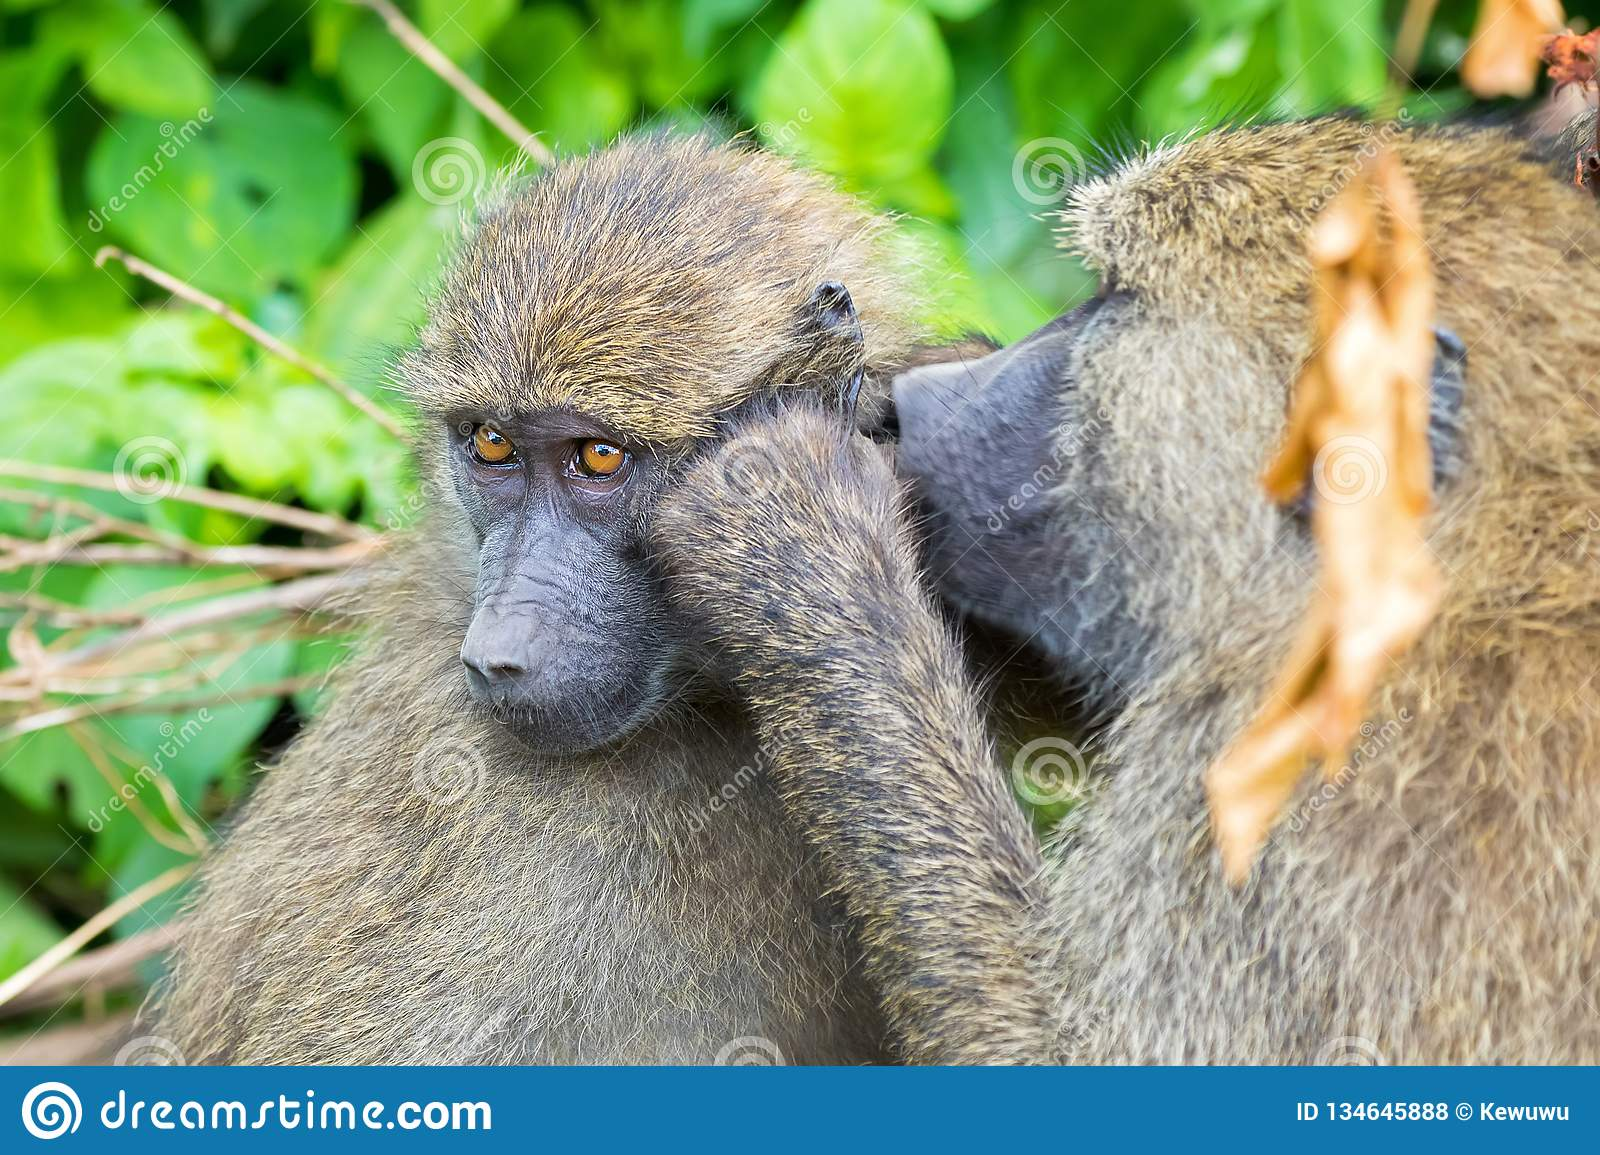 Olive Baboon, old world monkey with olive green coat looking for bug in Tanzania, East Africa